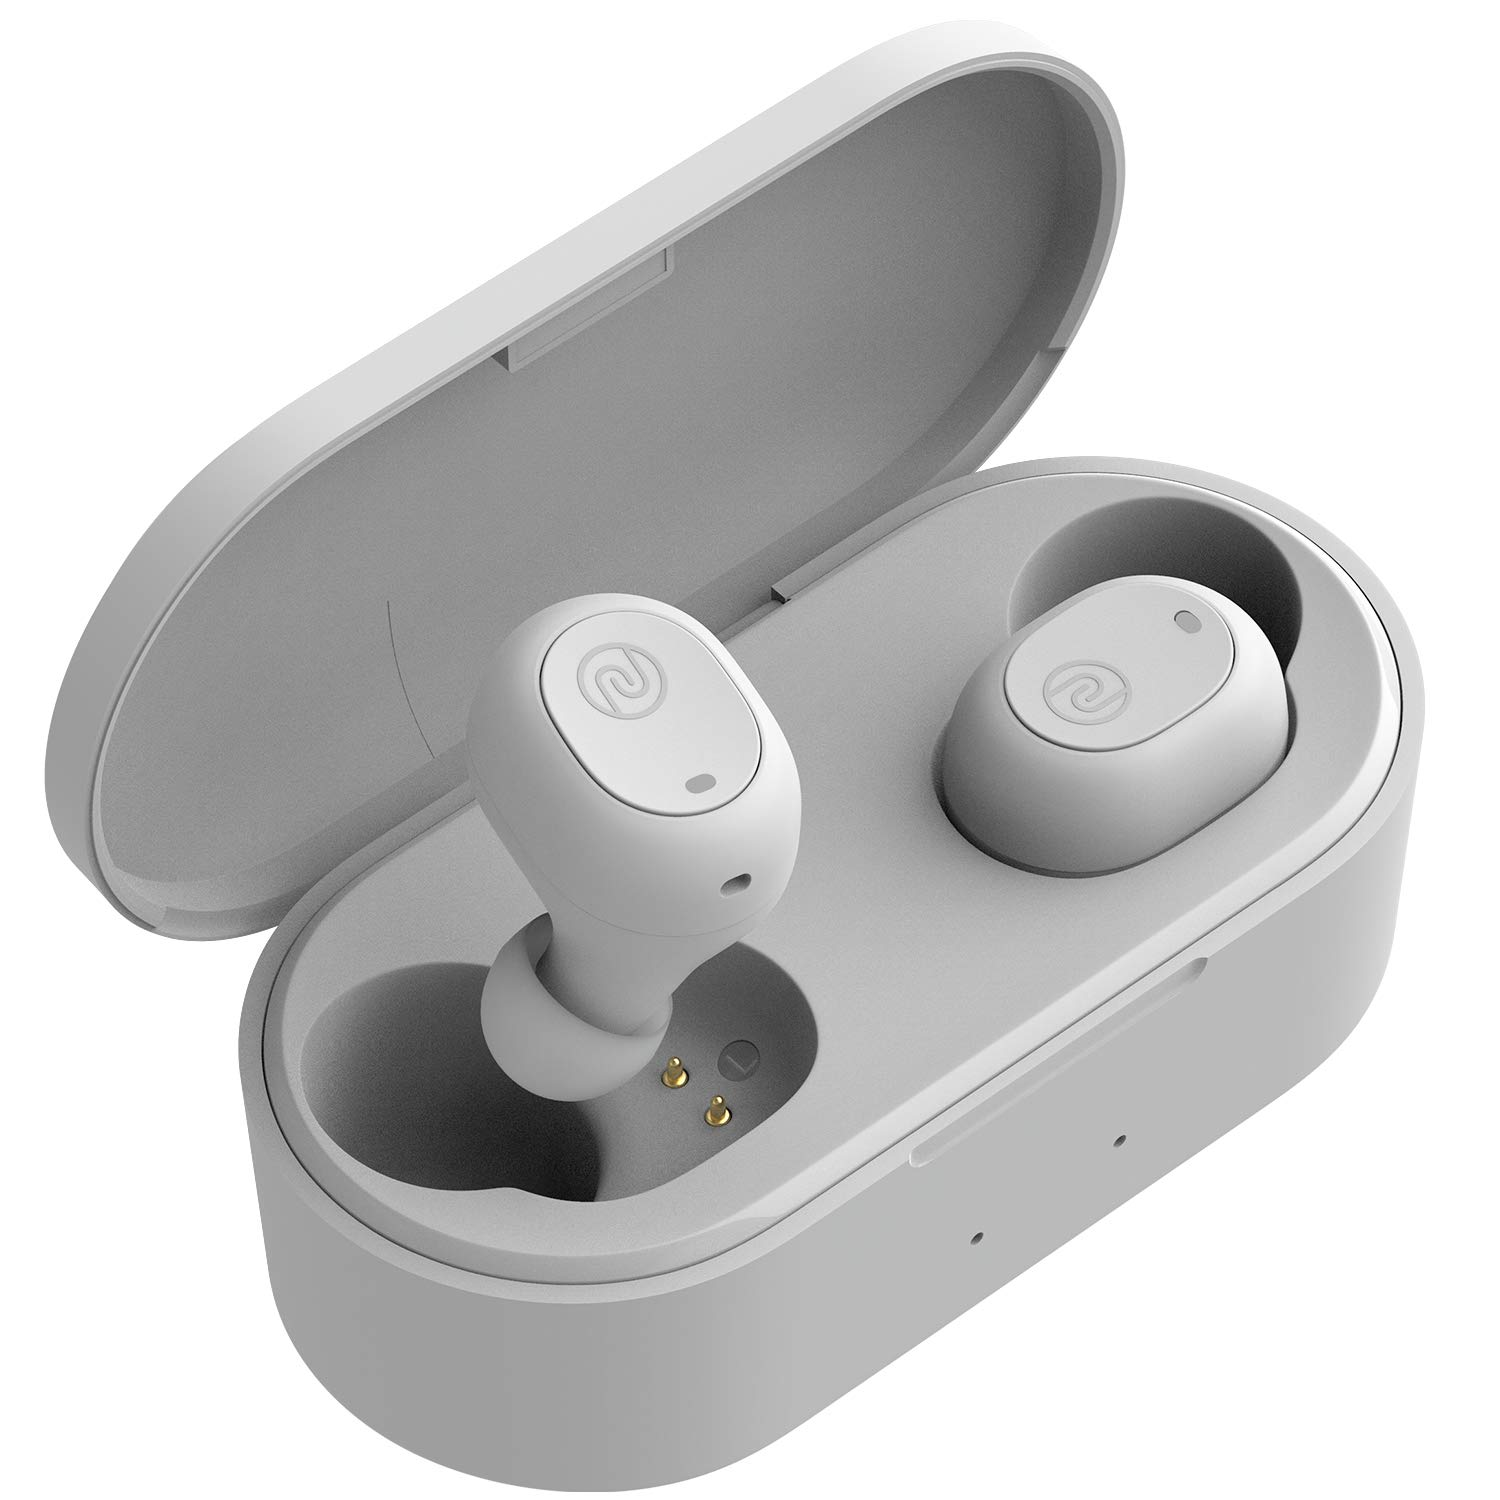 Noise Shots Nuvo Wireless Bluetooth Earbuds